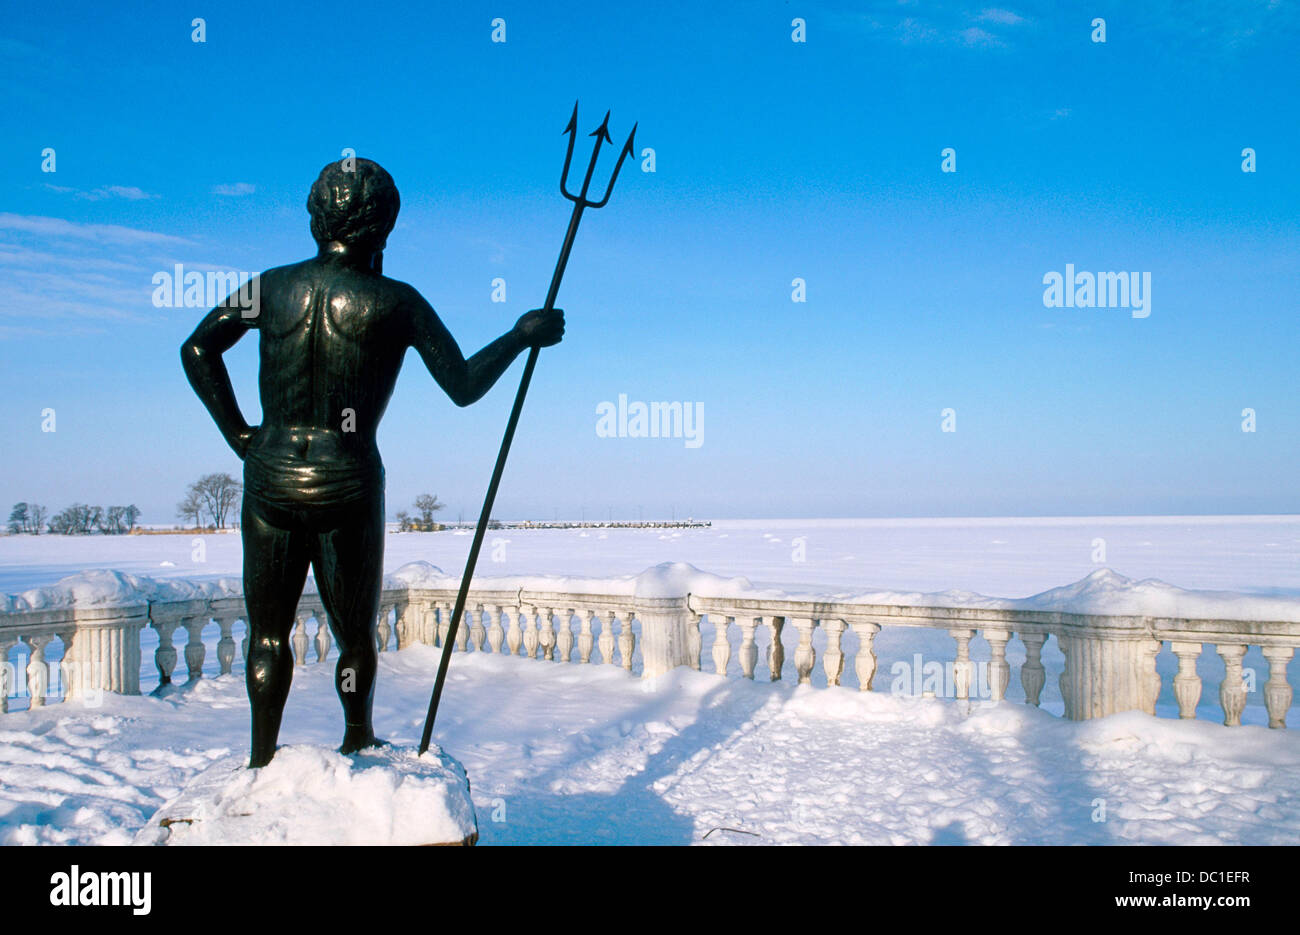 Image result for picture of poseidon in russia